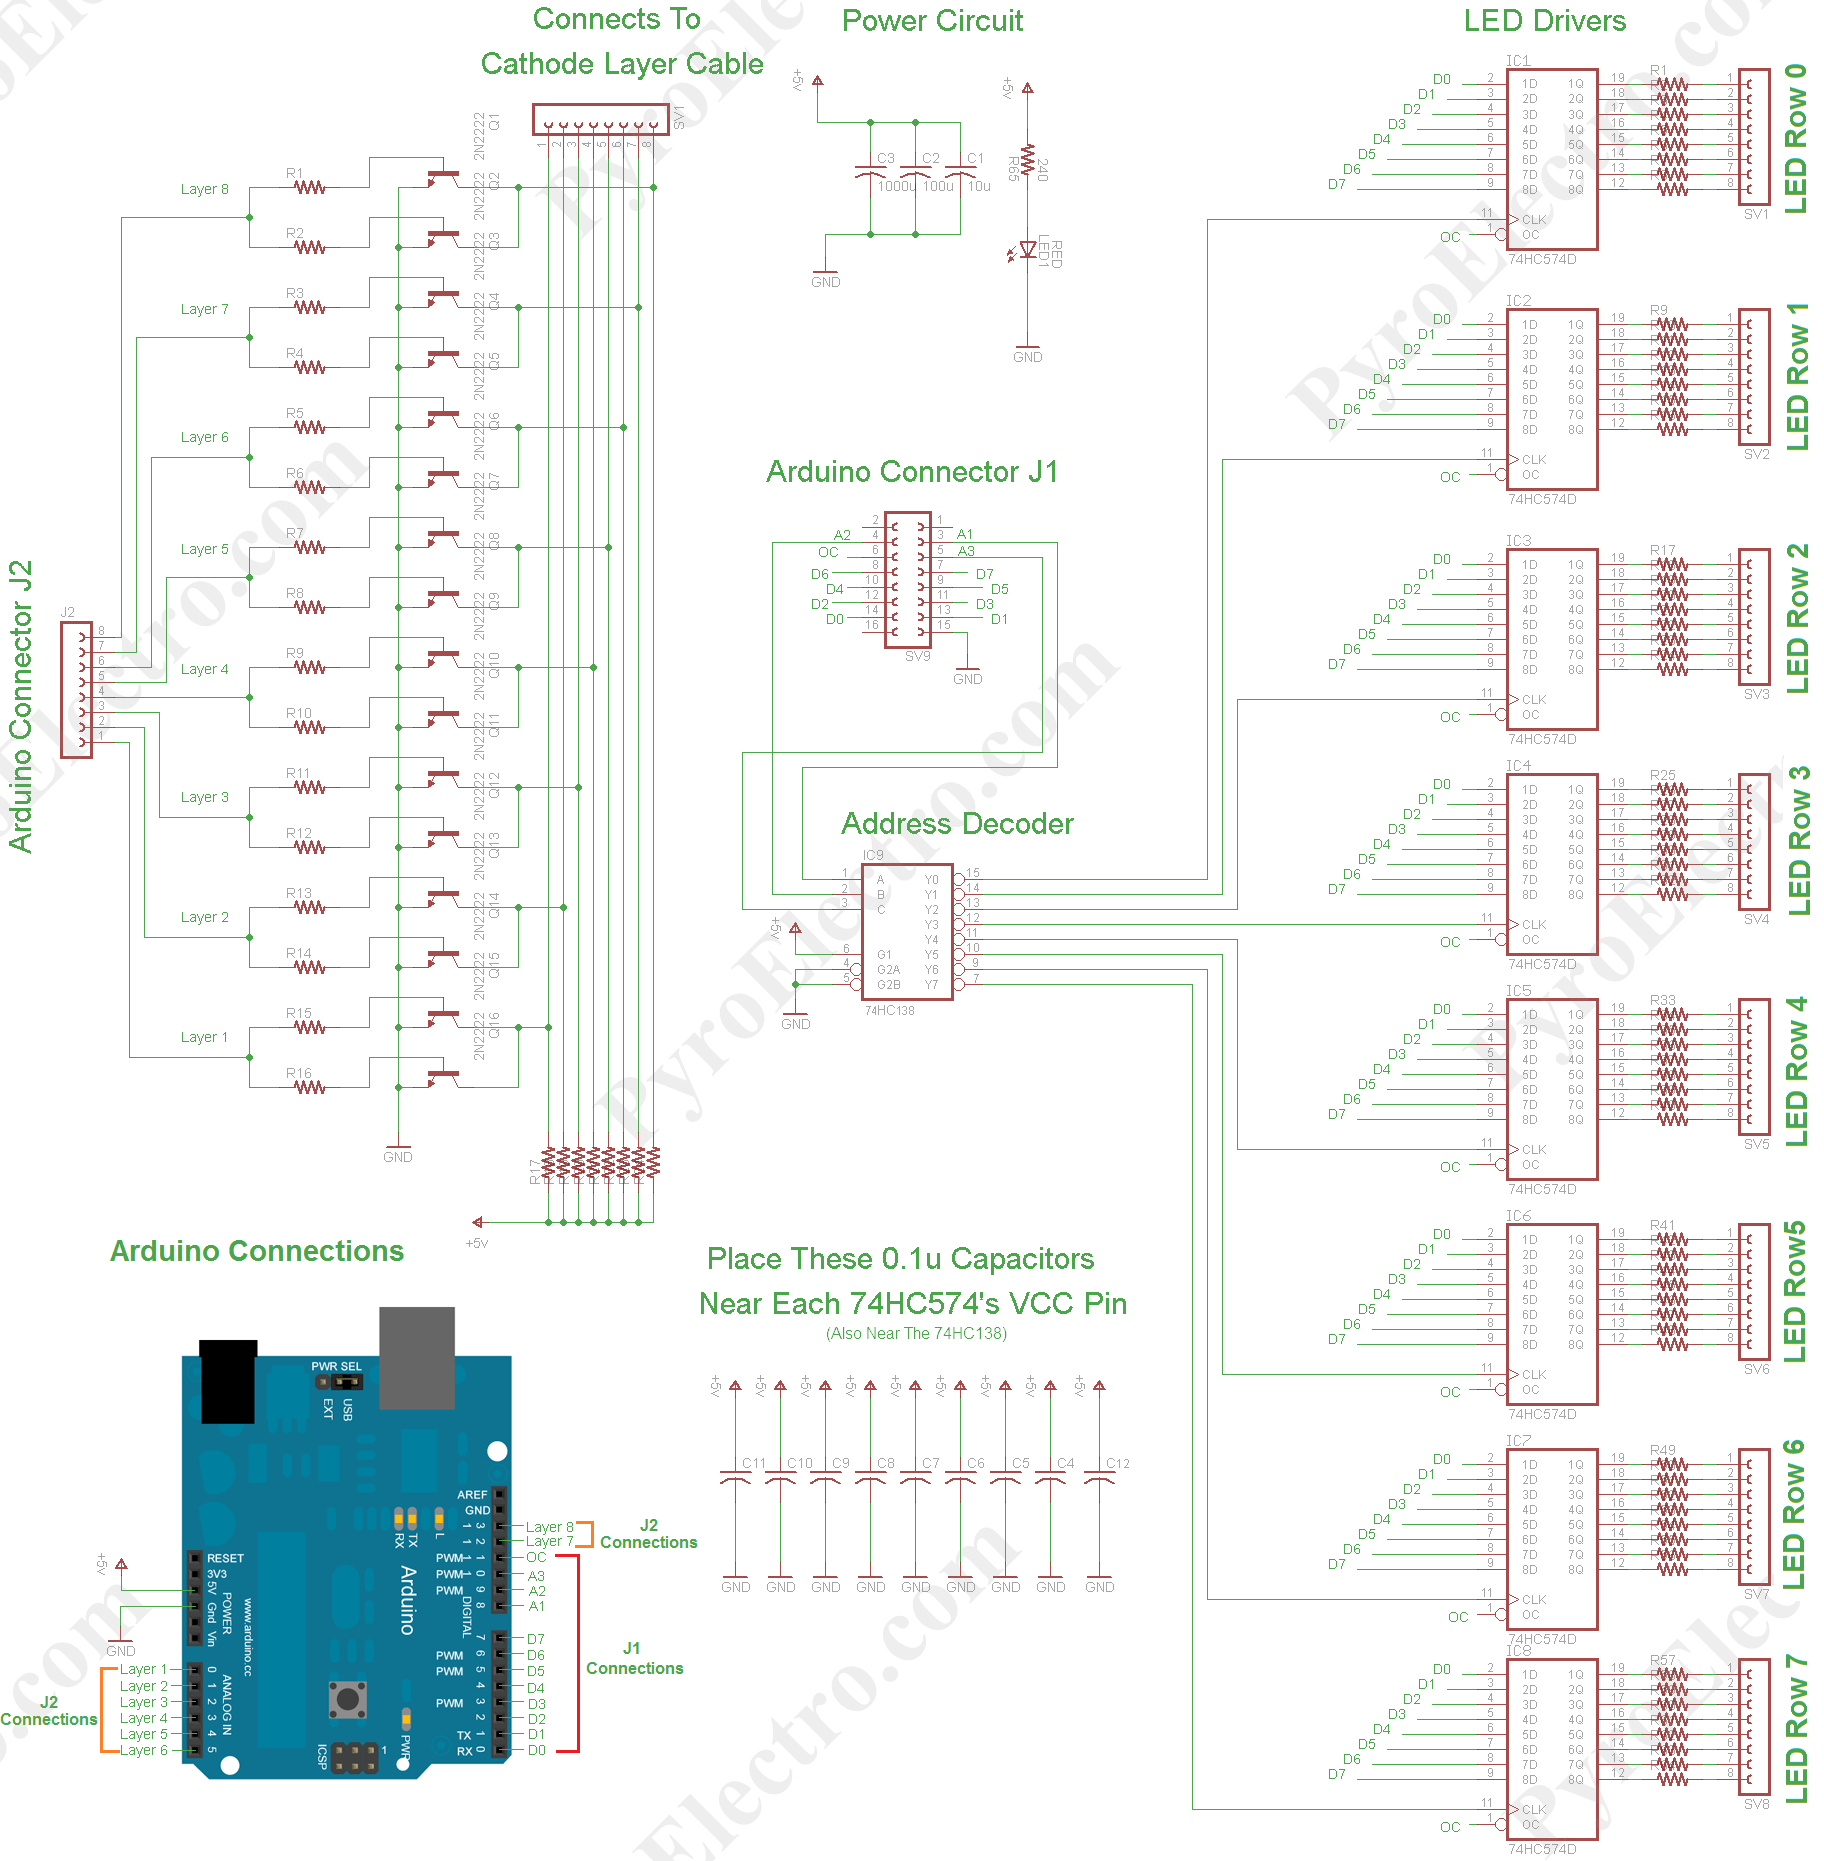 8x8x8 led cube schematic arduino in 2019 led cube arduino circuit diagram of 8x8x8 rgb led cube [ 1824 x 1861 Pixel ]